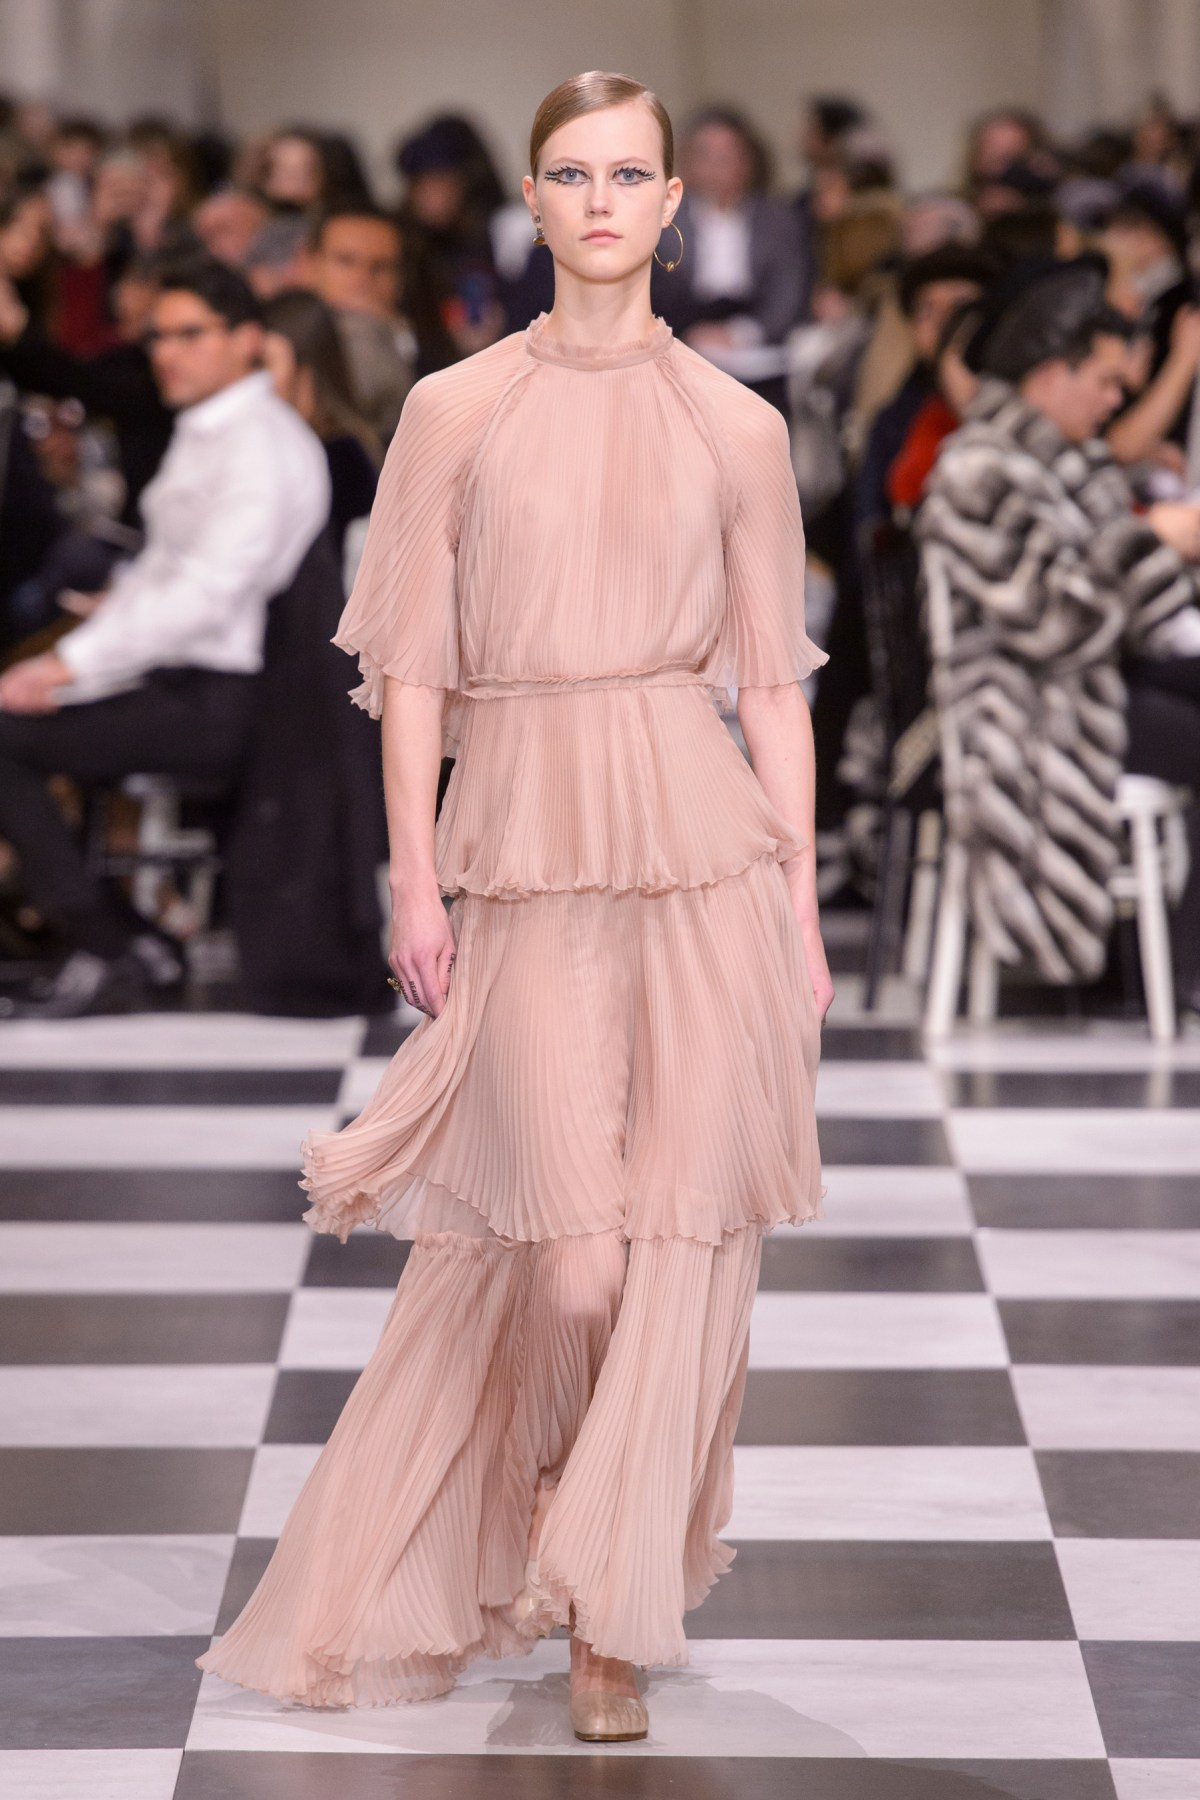 Christian Dior Spring 2018 Couture Fashion Show - The ...